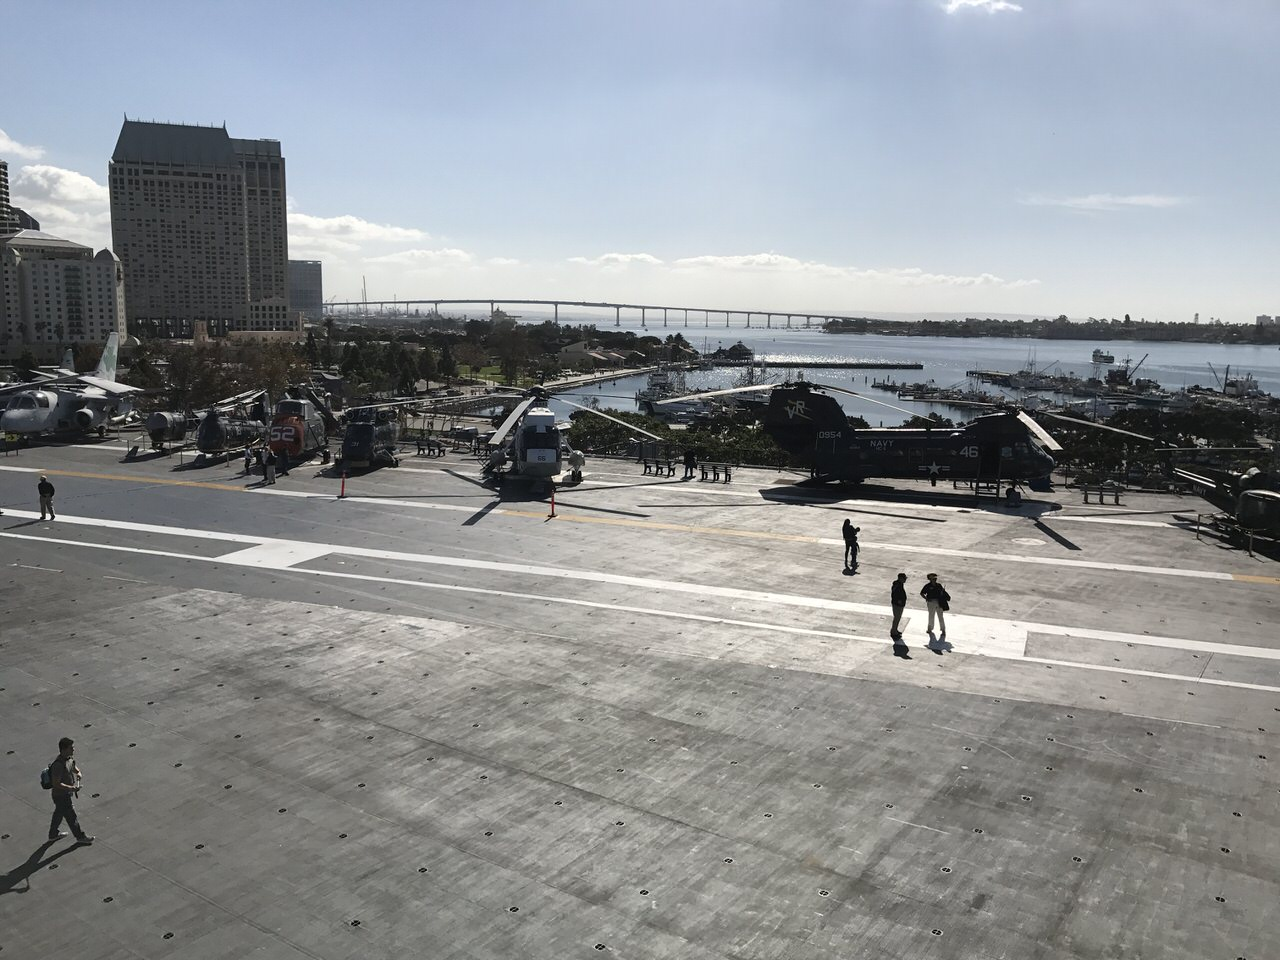 Uss midway museum 0578